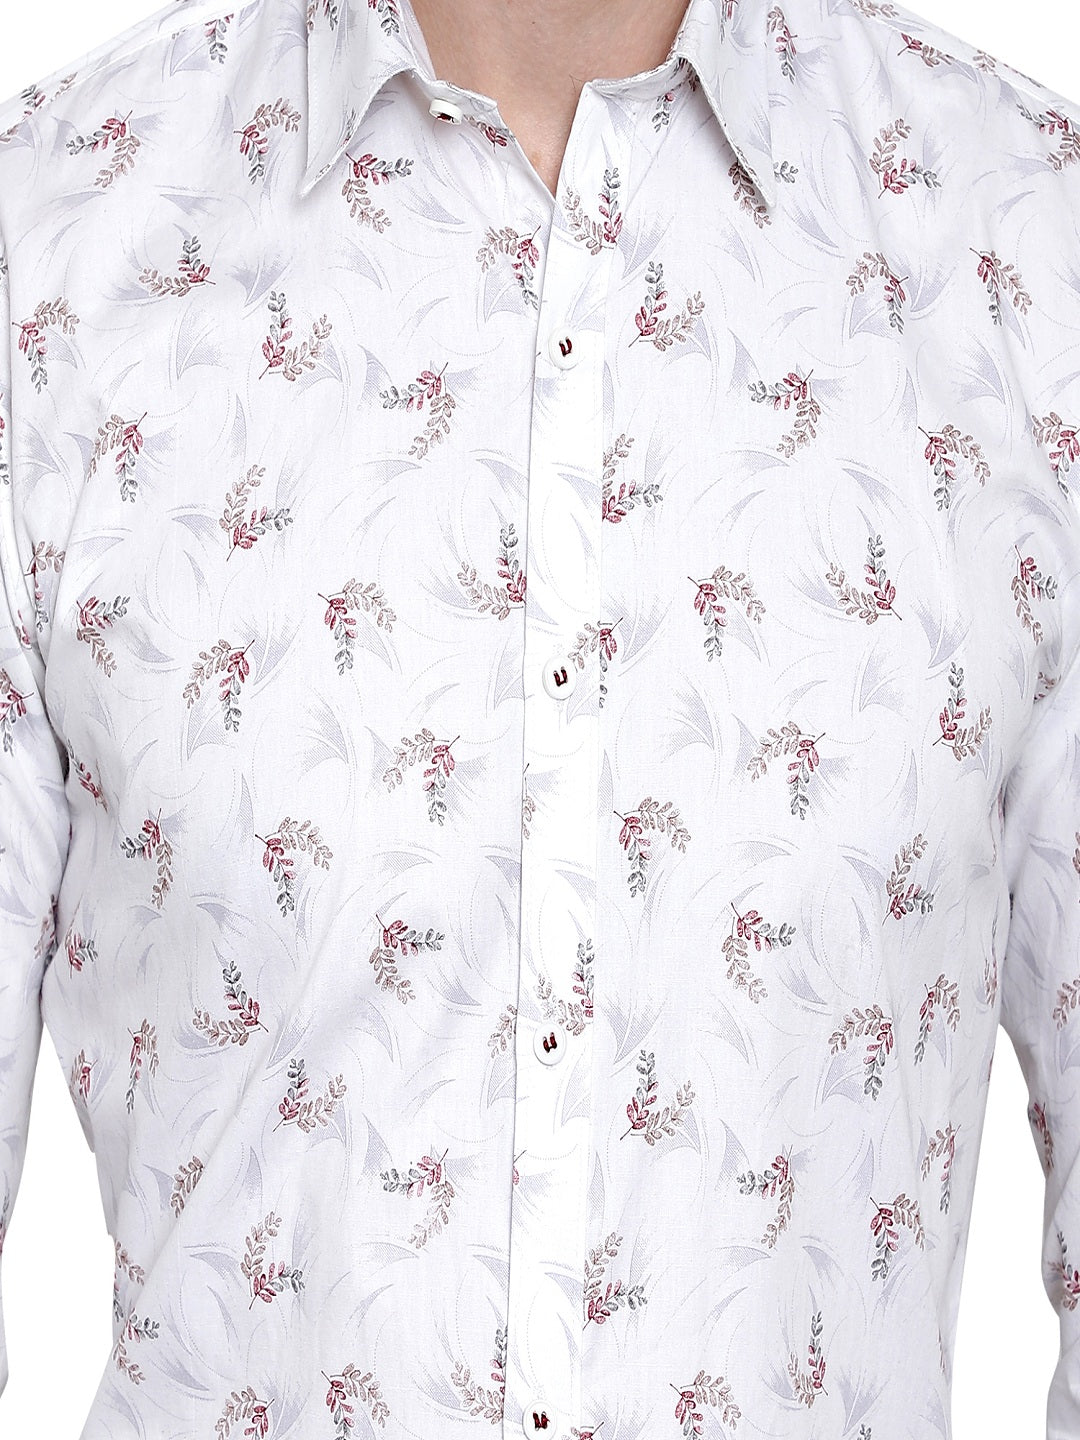 Men's Premium Cotton White Printed Shirt Code-1081 - Tooley Shirts